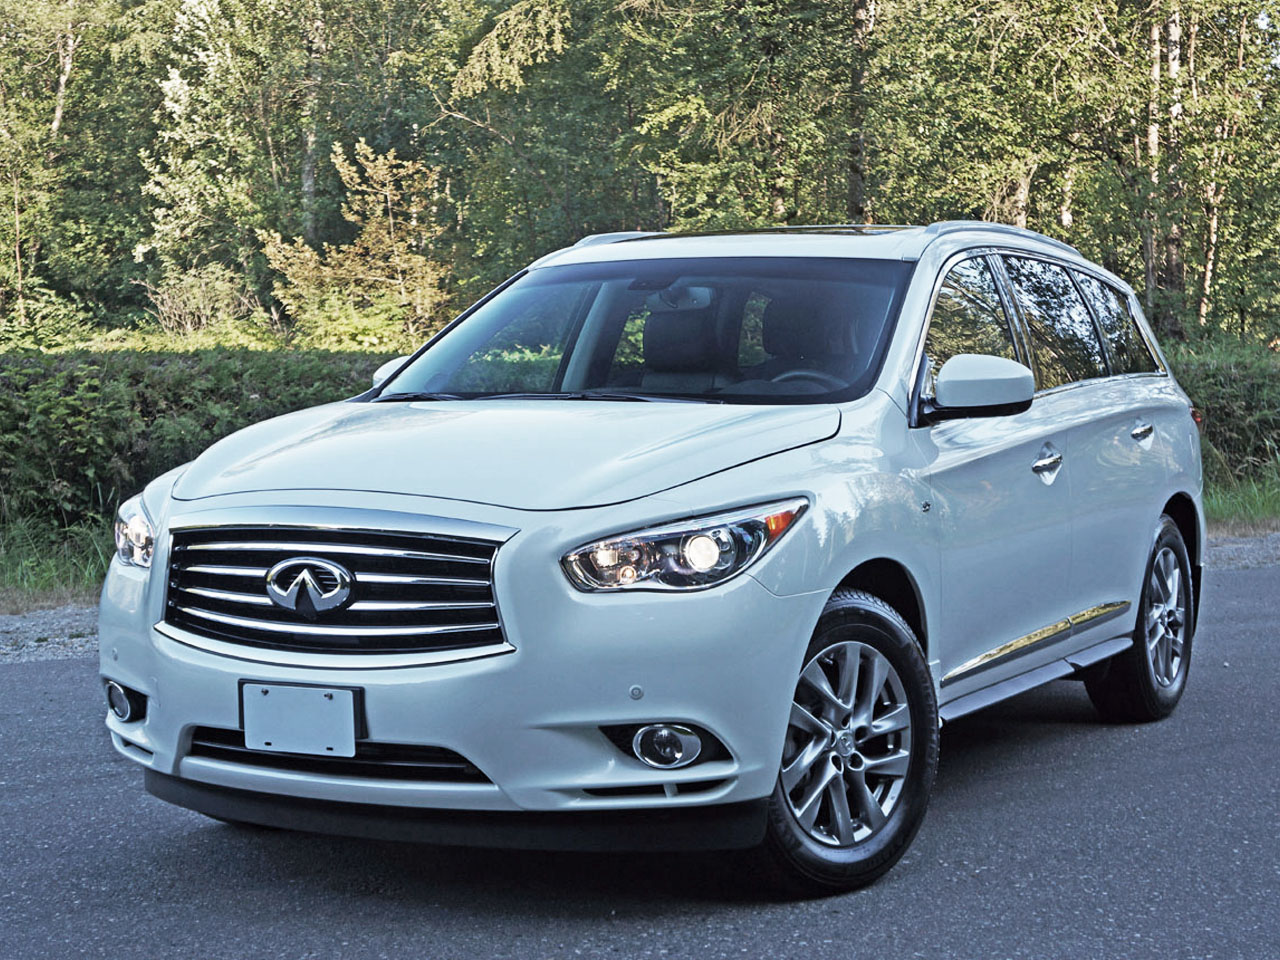 Infiniti QX AWD Road Test Review CarCostCanada - Infiniti qx60 invoice